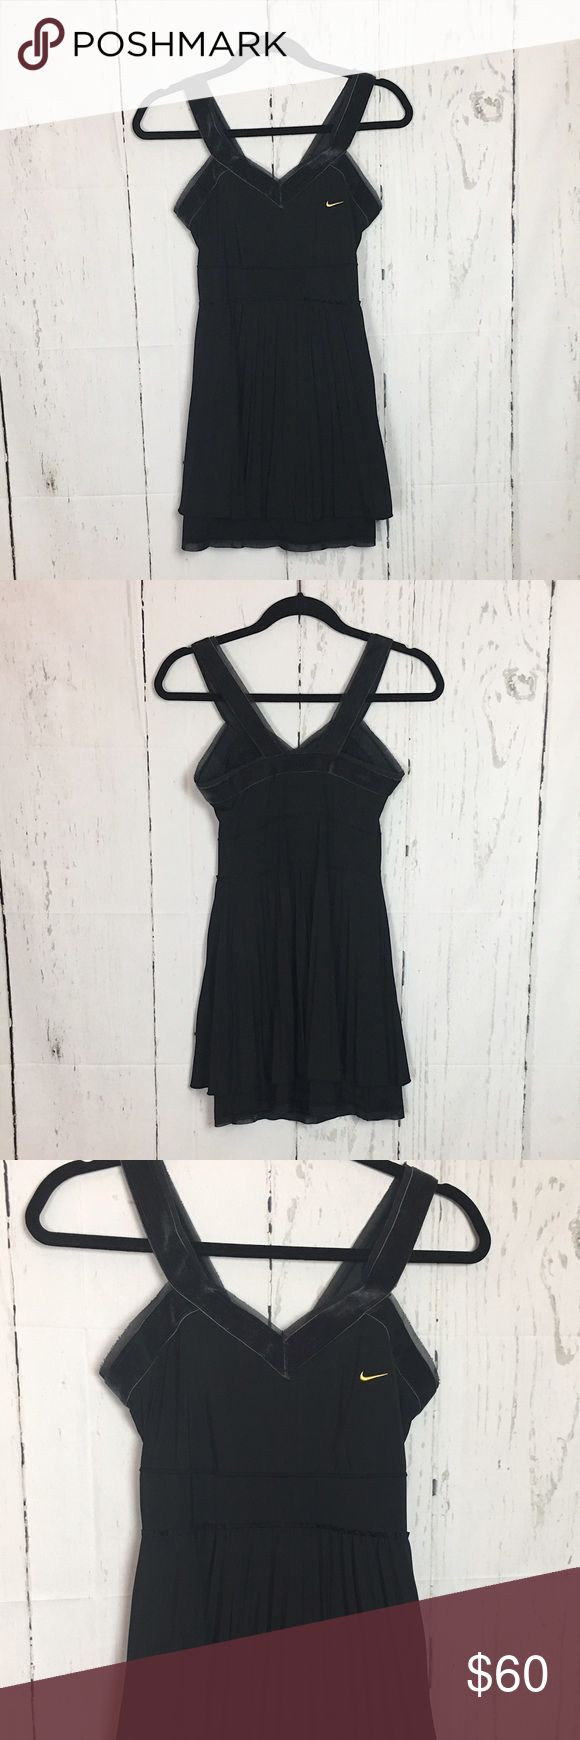 """NIKE MAria Sharapova 2008 US OPEN TENNIS DRESS blk Nike dress Maria Sharapova would've worn at the 2008 US Open with Velvet trim neckline and pleated empire waist overskirt, UV Protective and ultra lightweight, Nike Dri-FIT fabric to wick away sweat and help keep you dry and comfortable.  Built-in support bra for a great fit. Bonded seams, Embroidered Swoosh design trademark at left chest  Simply stunning! measurements: Armpit to armpit: 15"""" Waist: 13"""" Overall length: 31.5"""" Nike Dresses Mini"""